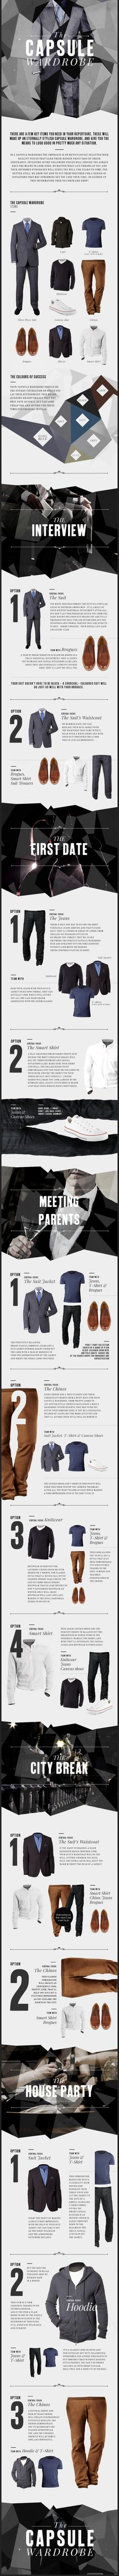 Men's Essentials:  How to build a Time Capsule Wardrobe.  These items will give you the means to look good in pretty much any situation,  No matter what life throws at you.